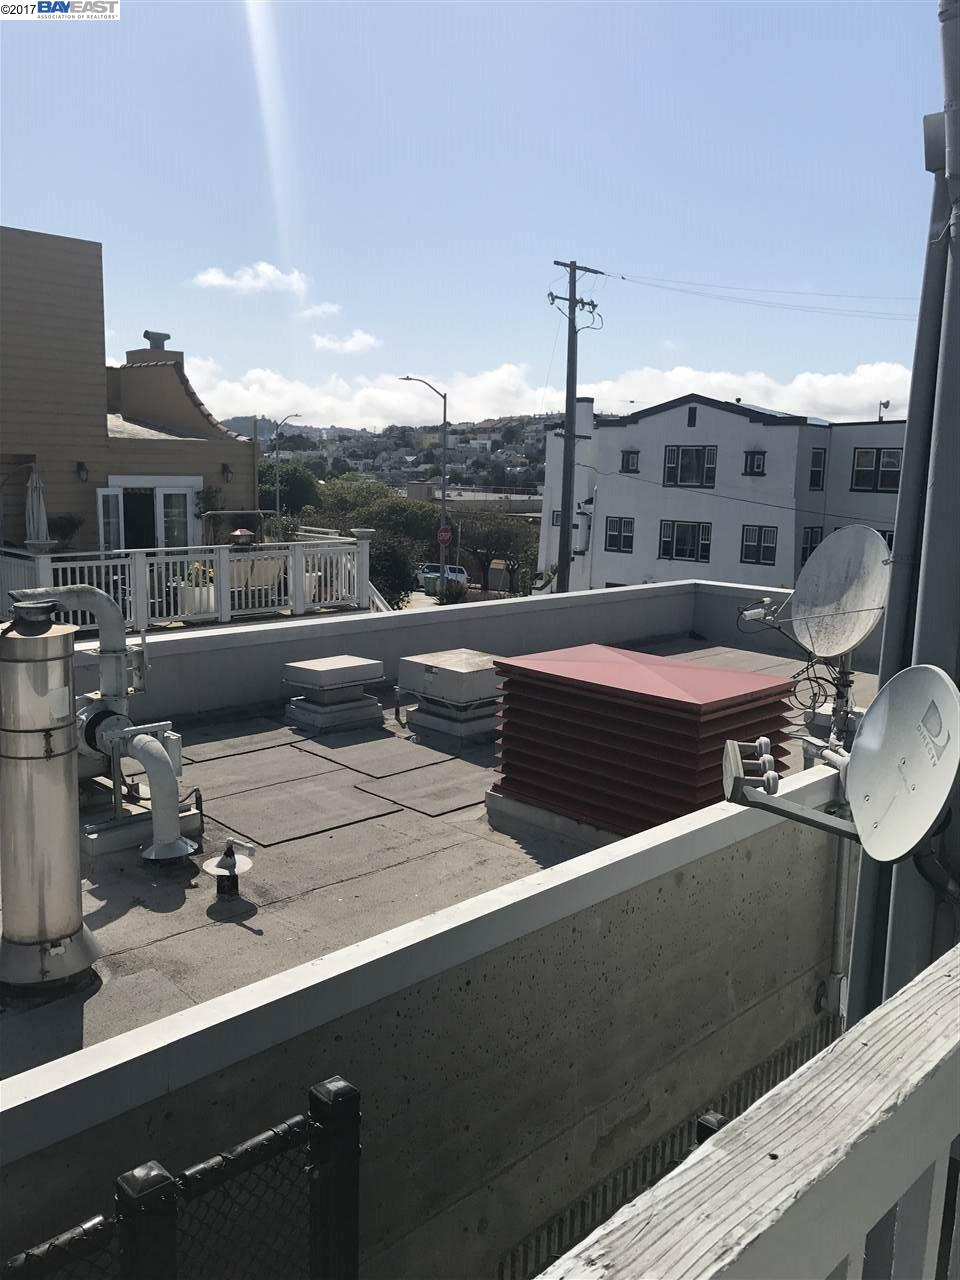 Additional photo for property listing at 1219 Lane Street 1219 Lane Street San Francisco, California 94124 United States